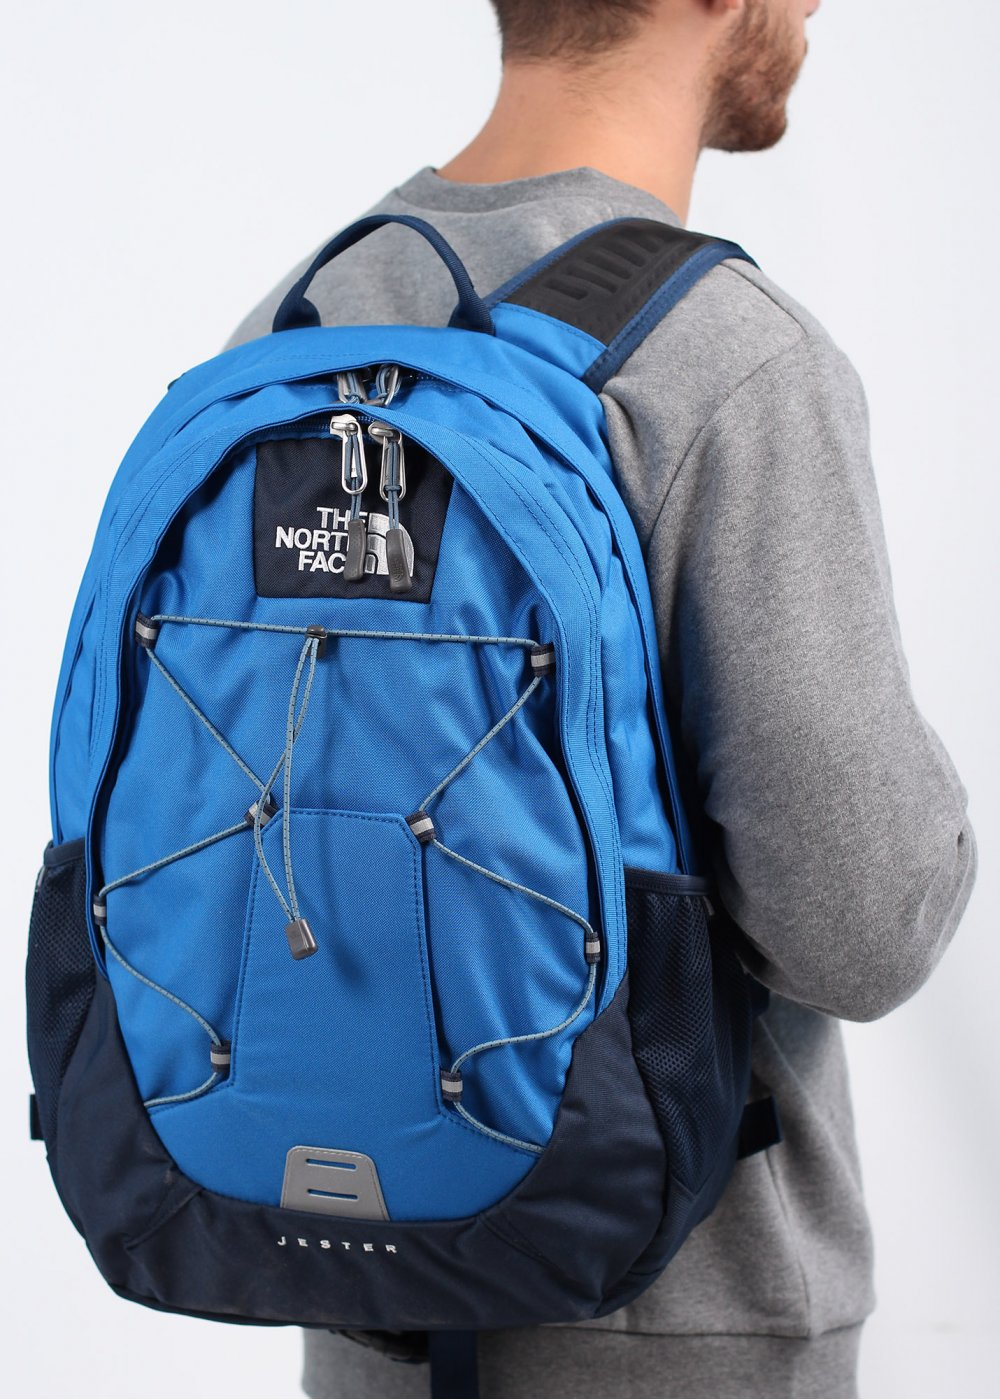 21f85afbff The North Face Jester Bag - Blue